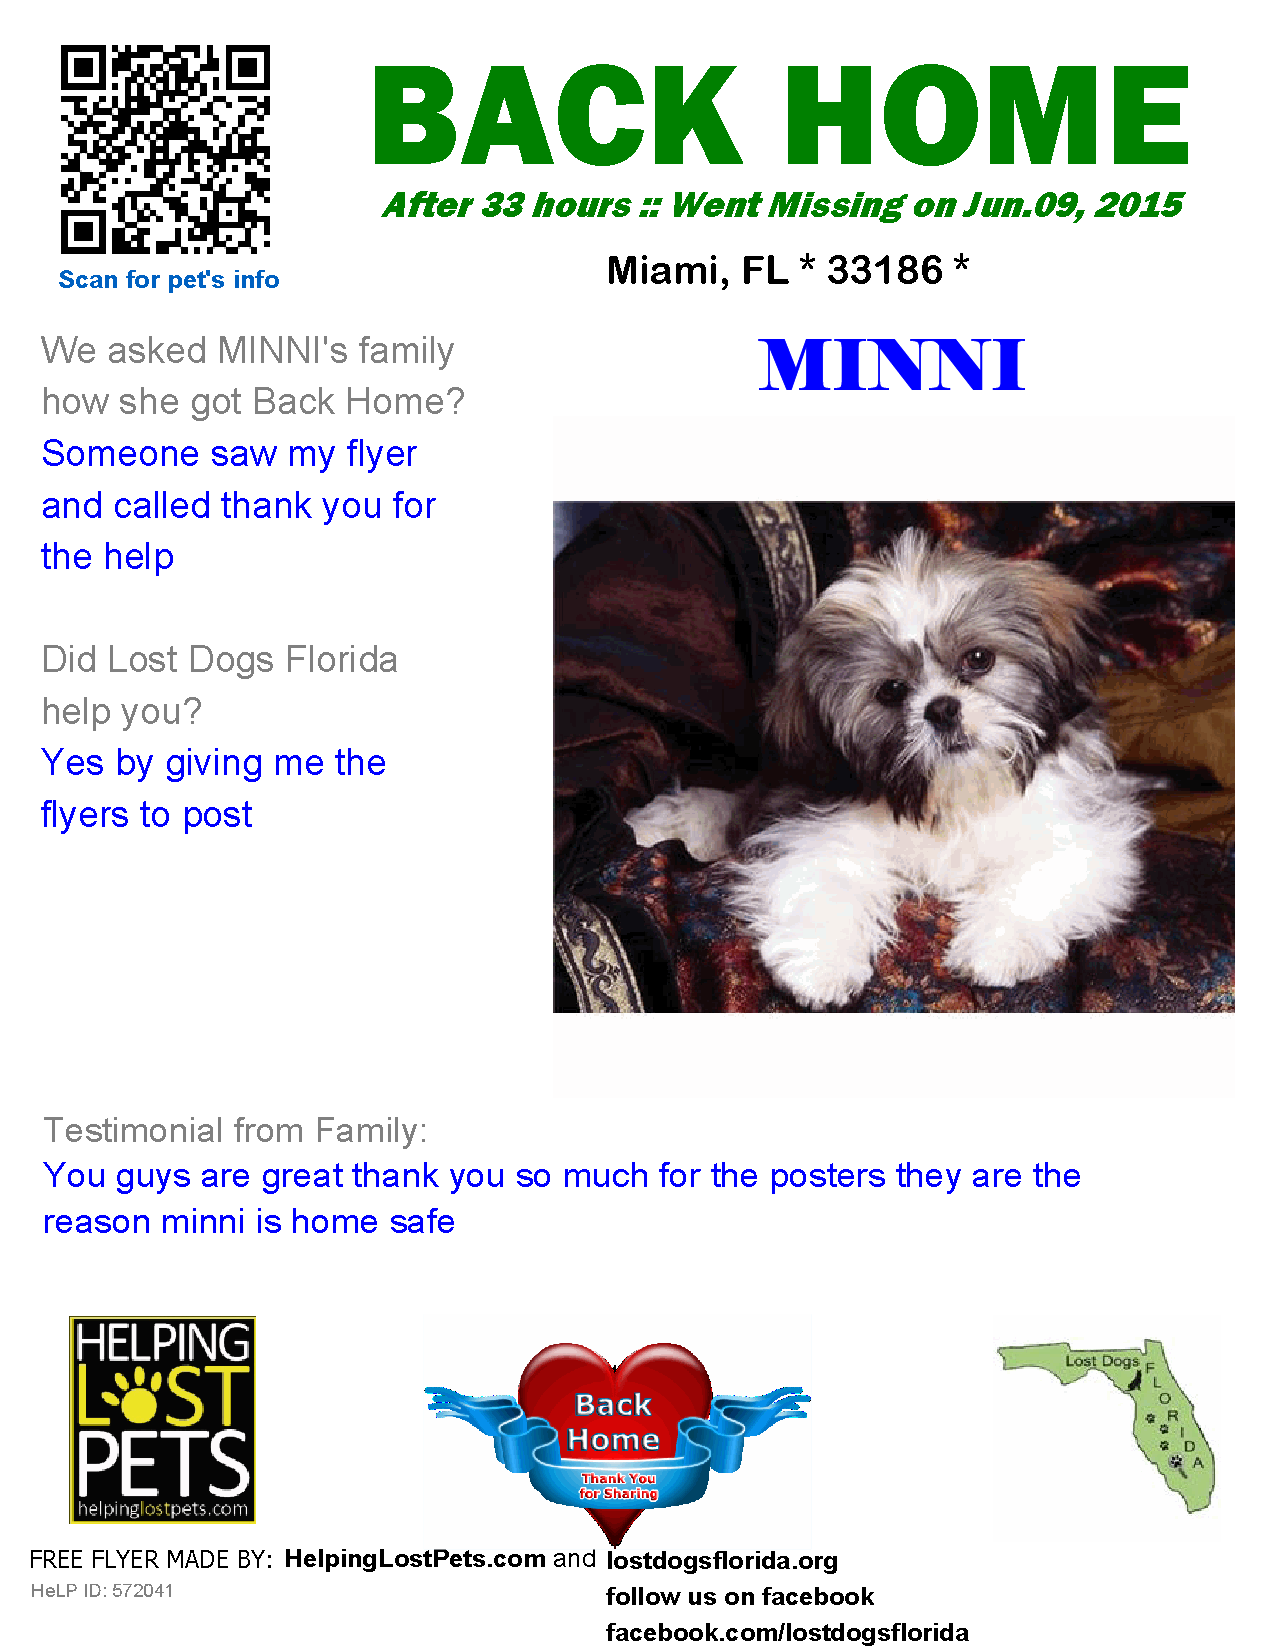 Helping Lost Pets Dog Shih Tzu Back Home With Images